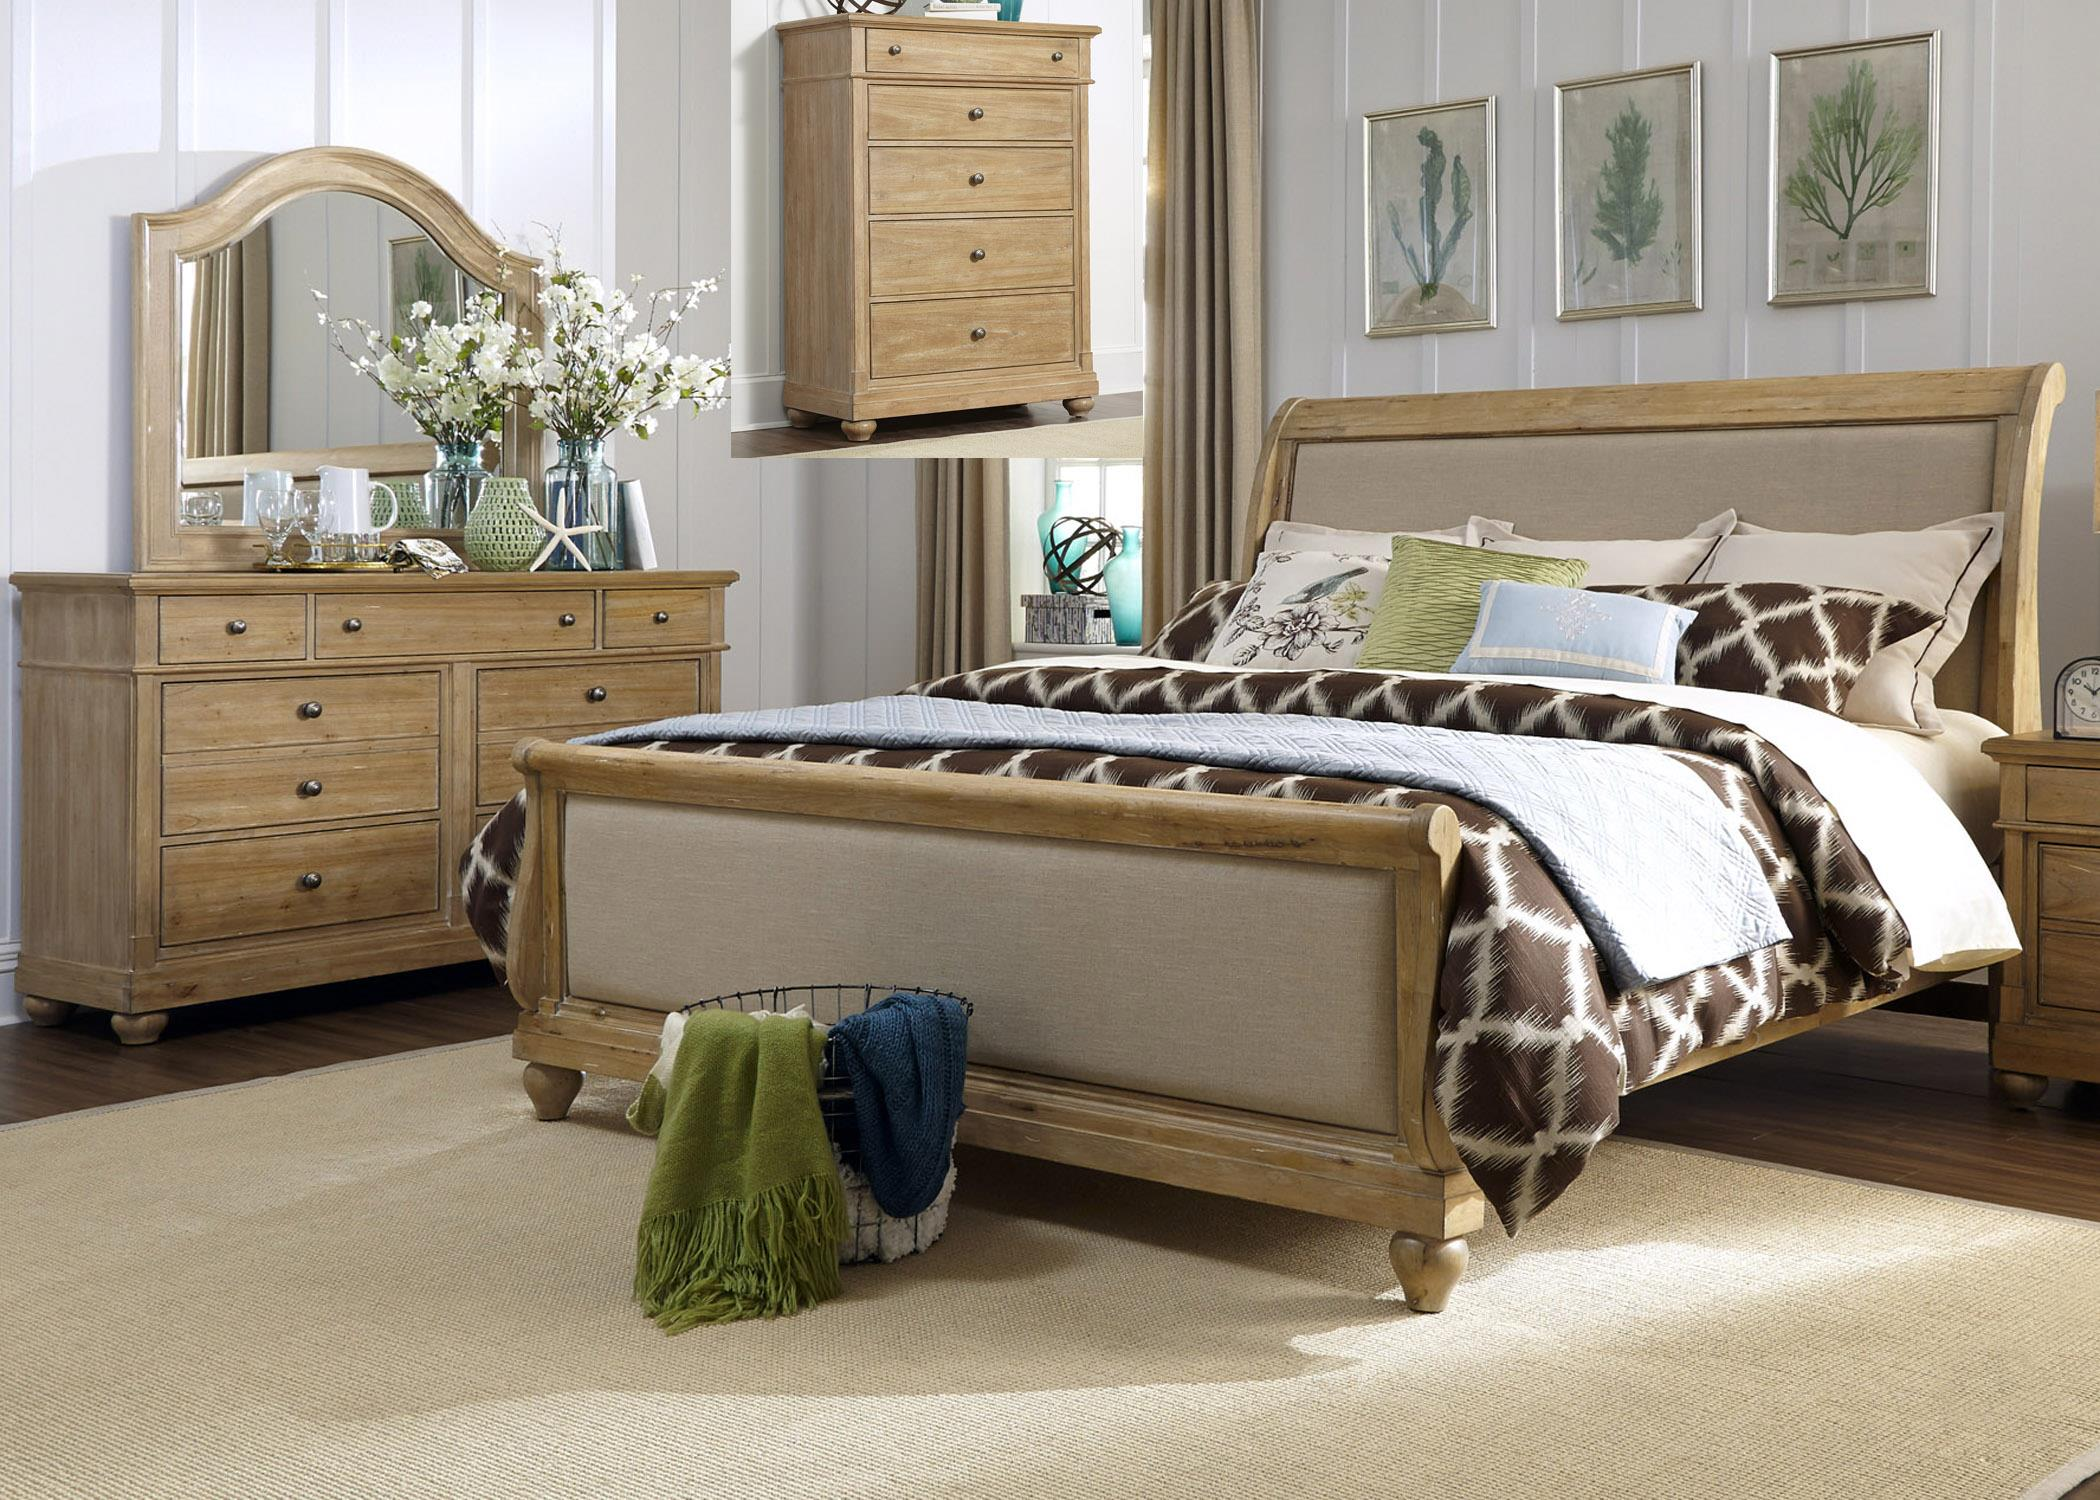 Liberty Furniture Harbor View Queen Bedroom Group - Item Number: 531-BR-QSLDMC